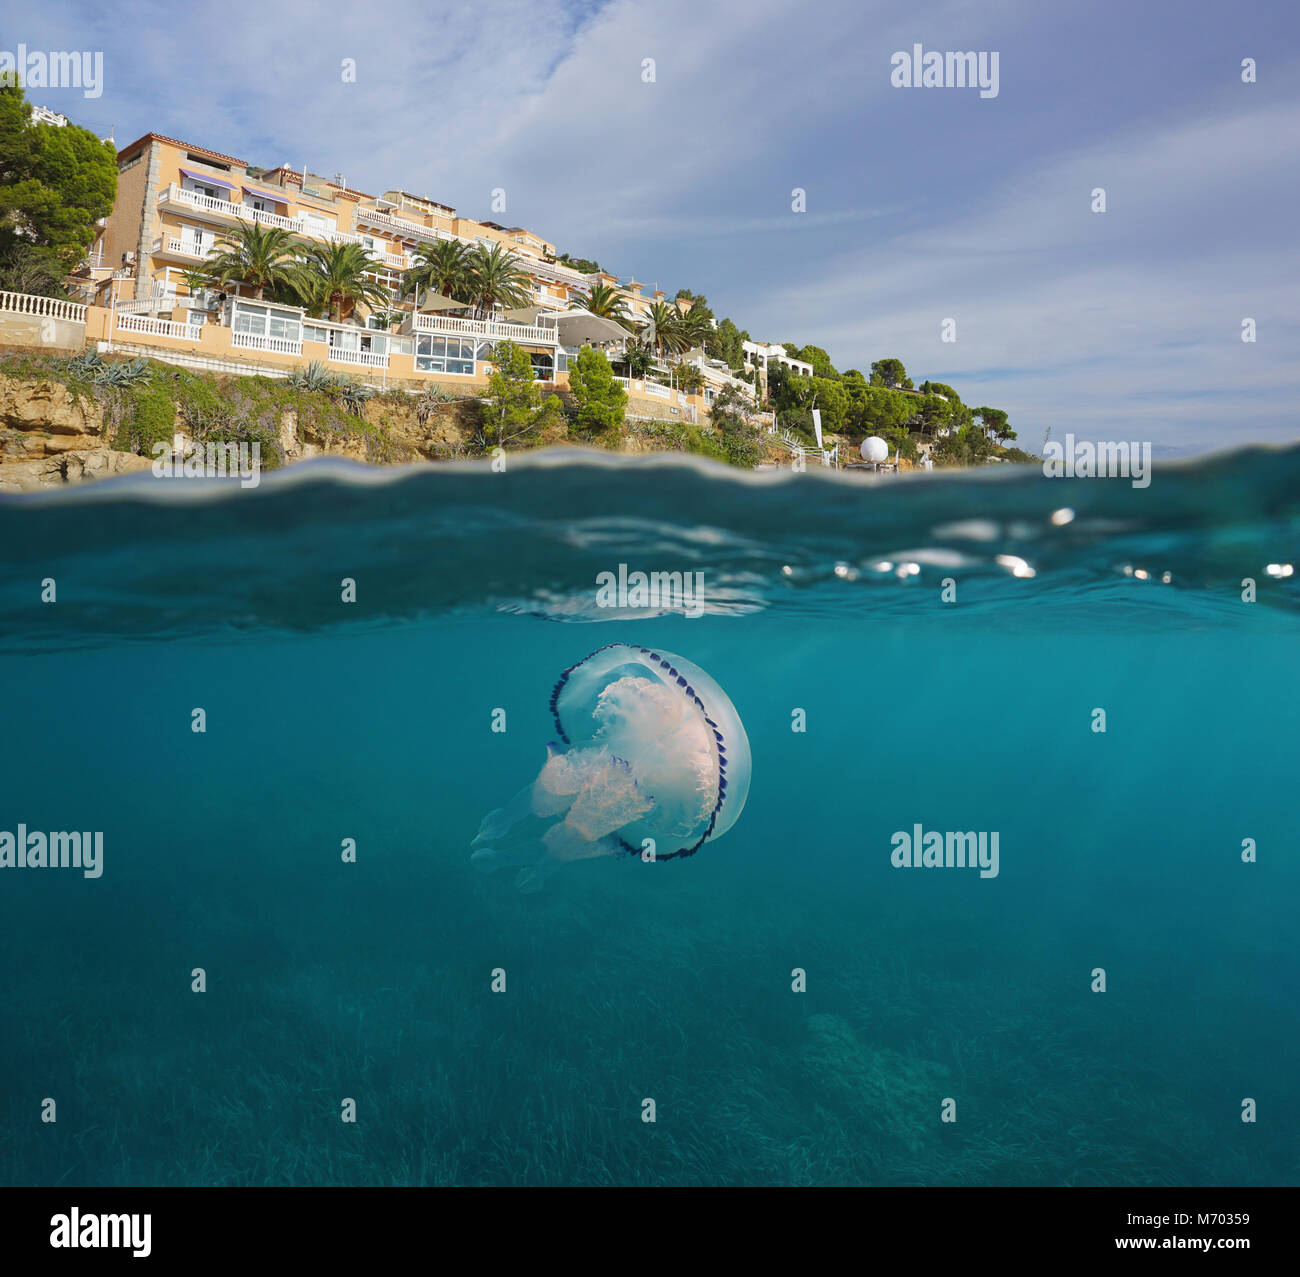 Hotel on the coast of the Mediterranean sea with a jellyfish underwater, split view above and below water surface, - Stock Image